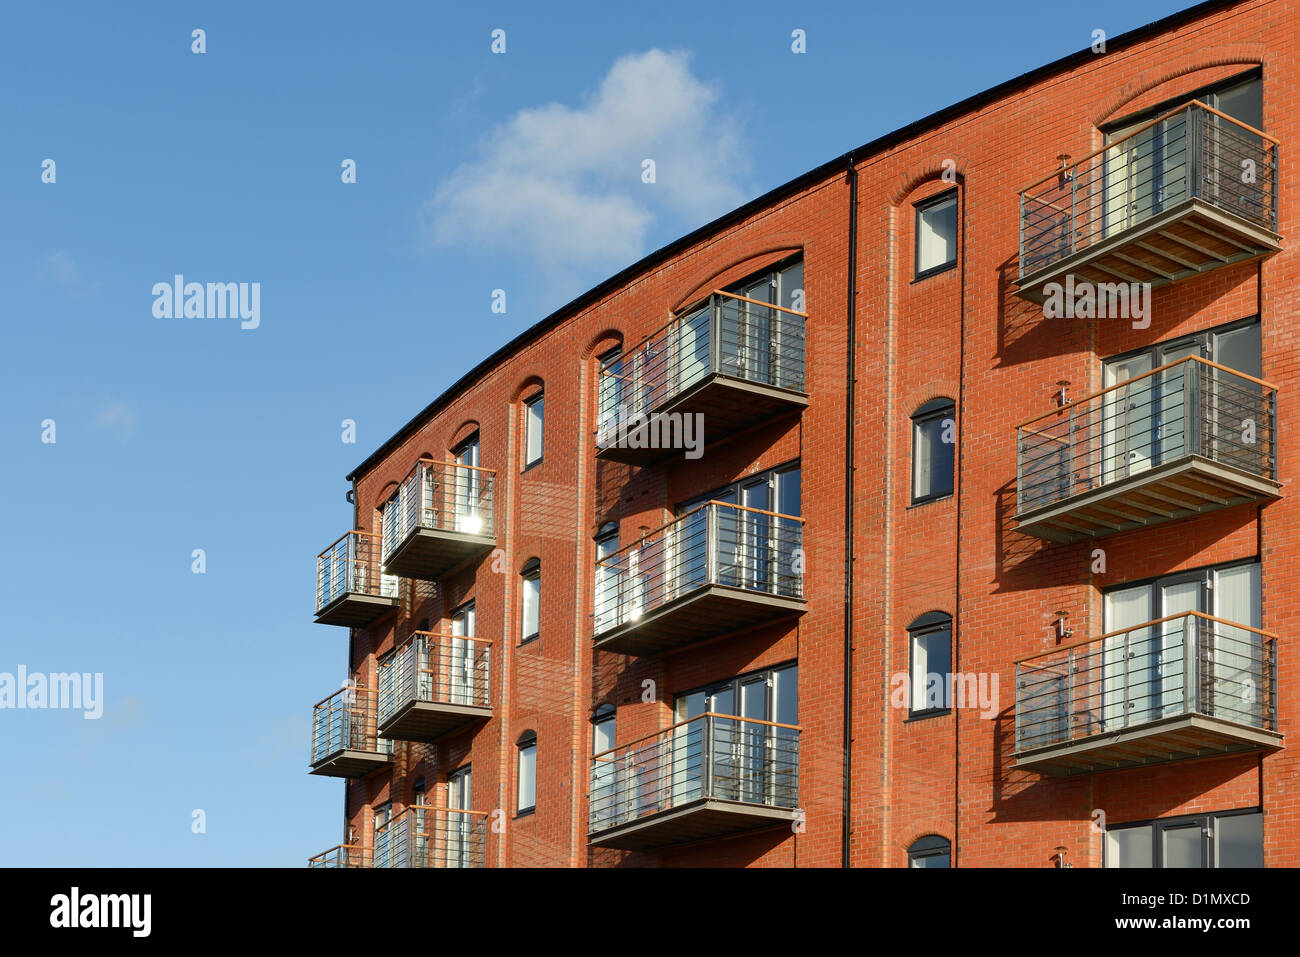 New build flats and apartments in Chester UK - Stock Image